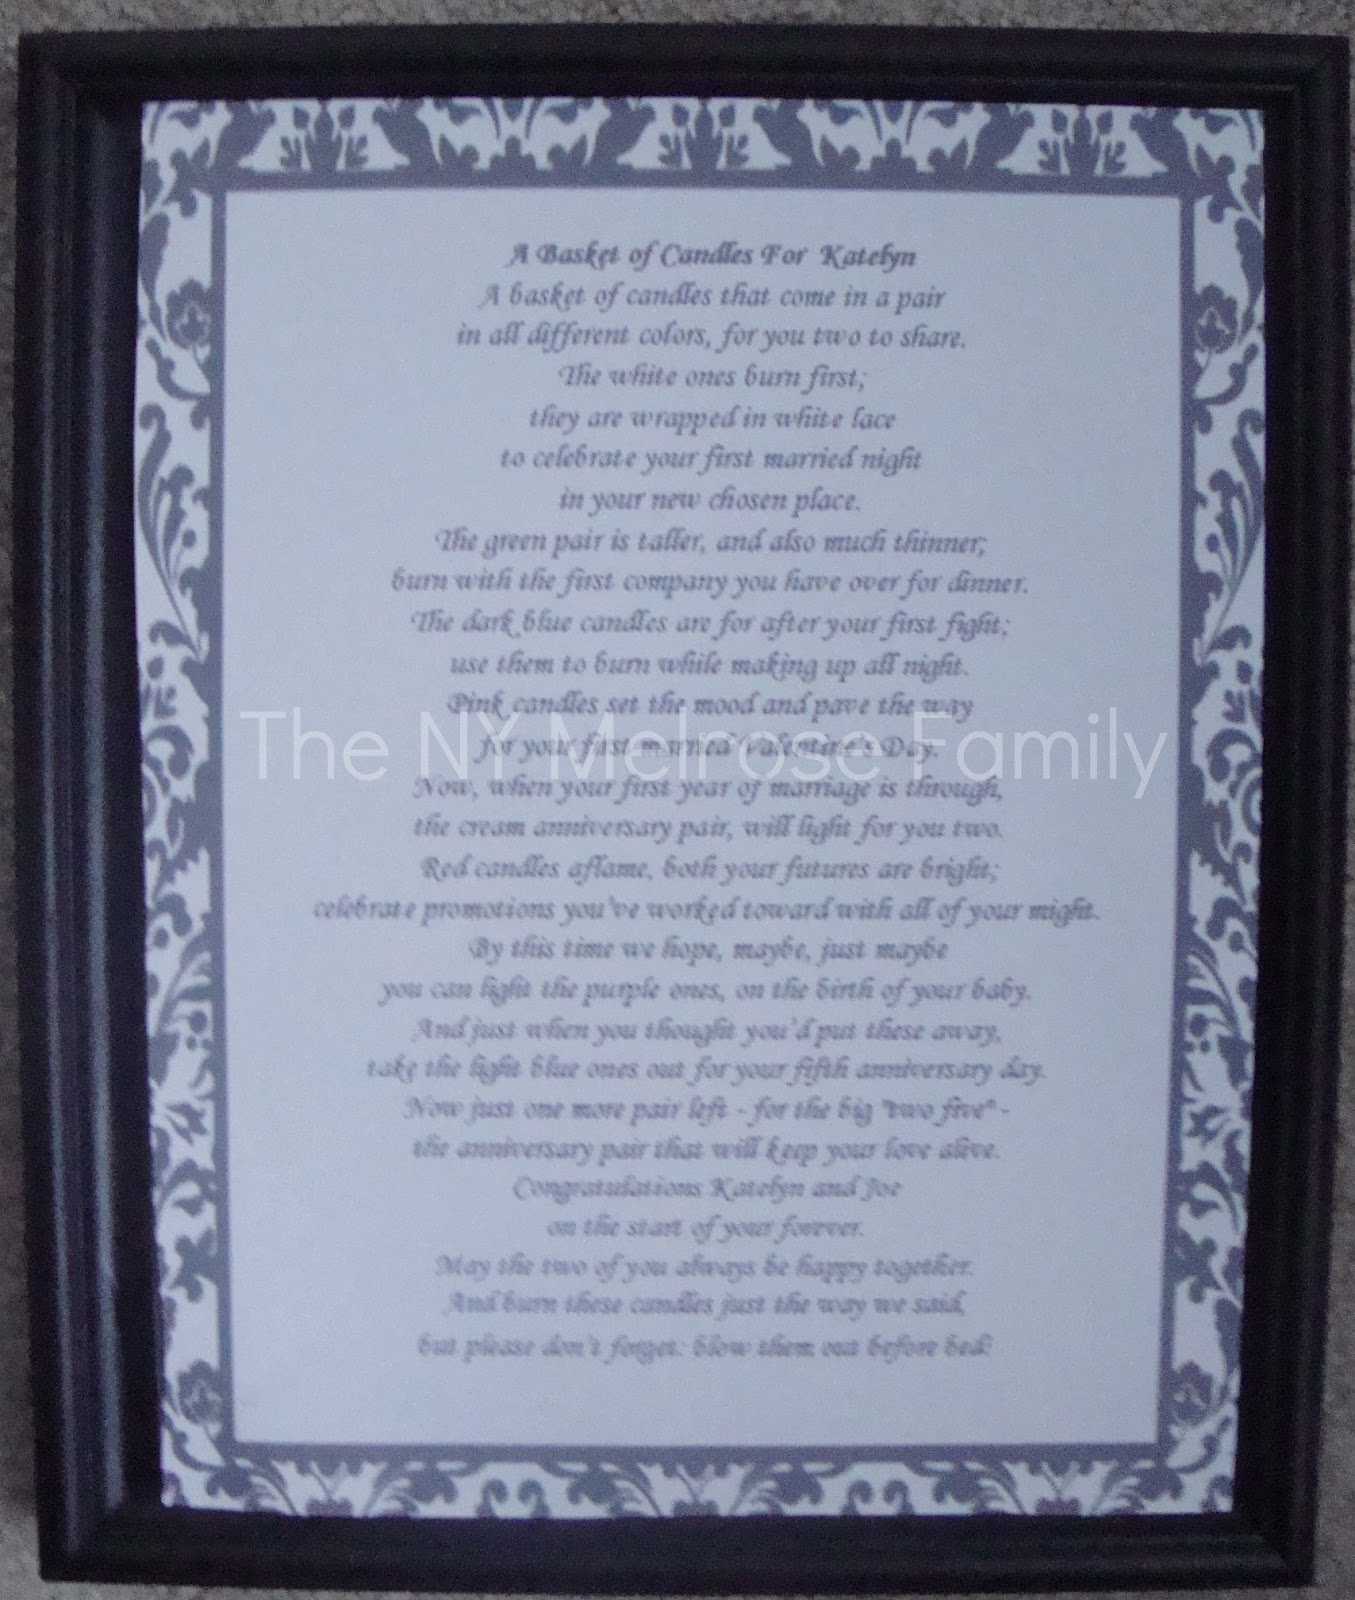 Wedding Candle Gift With Poem : spray painted the frame black and simply placed the poem inside.